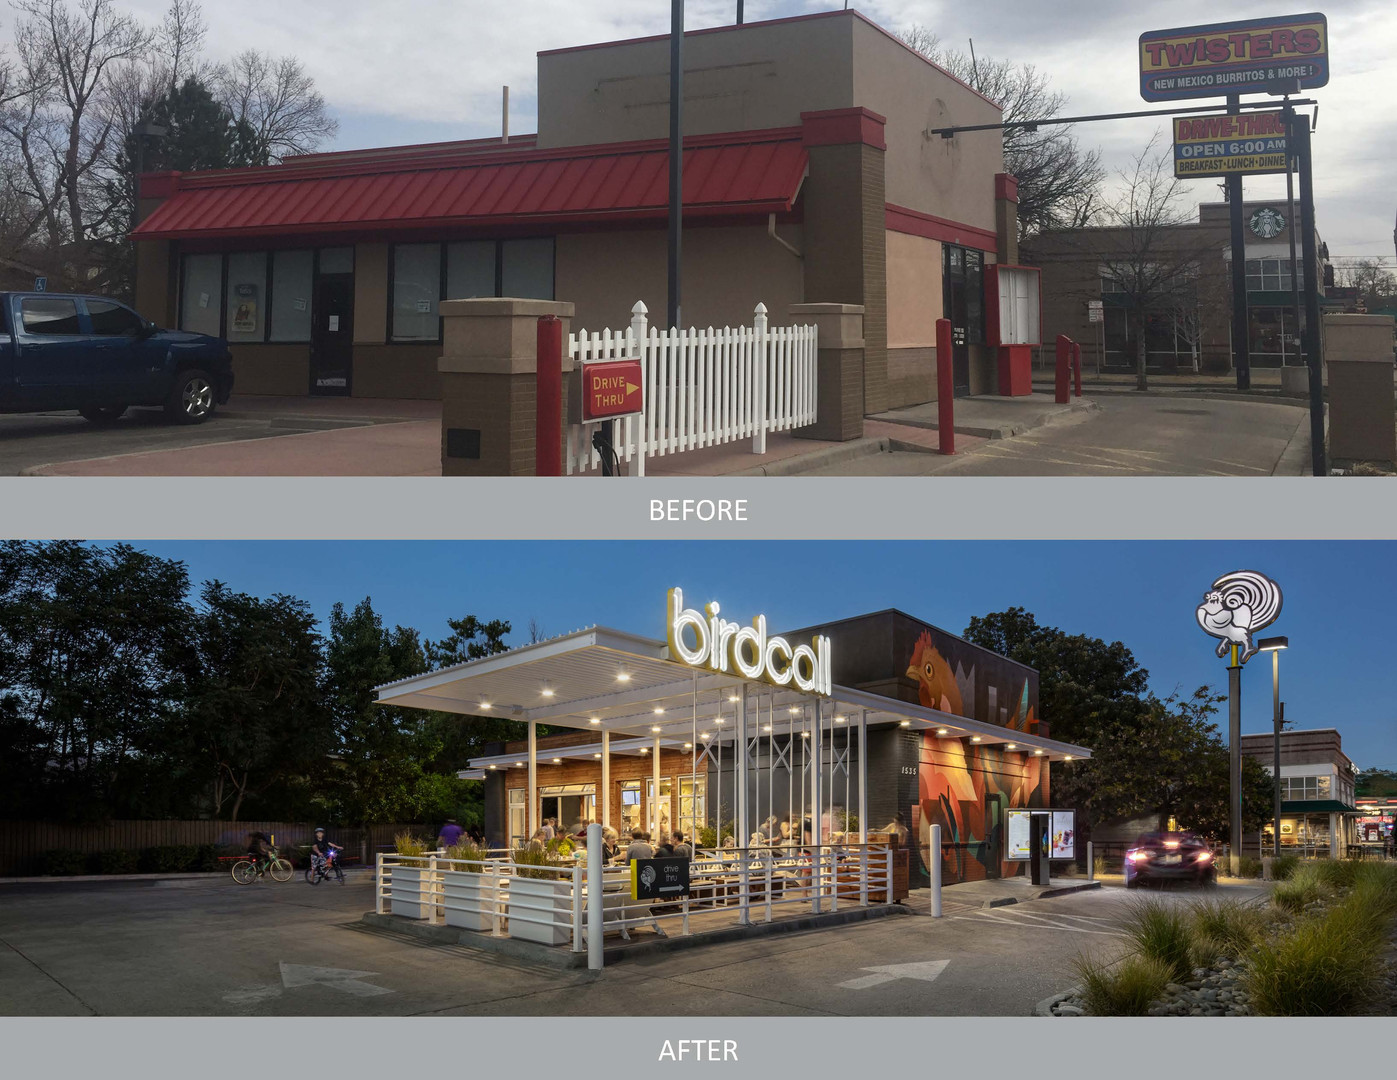 Before-After-Birdcall-1.jpg